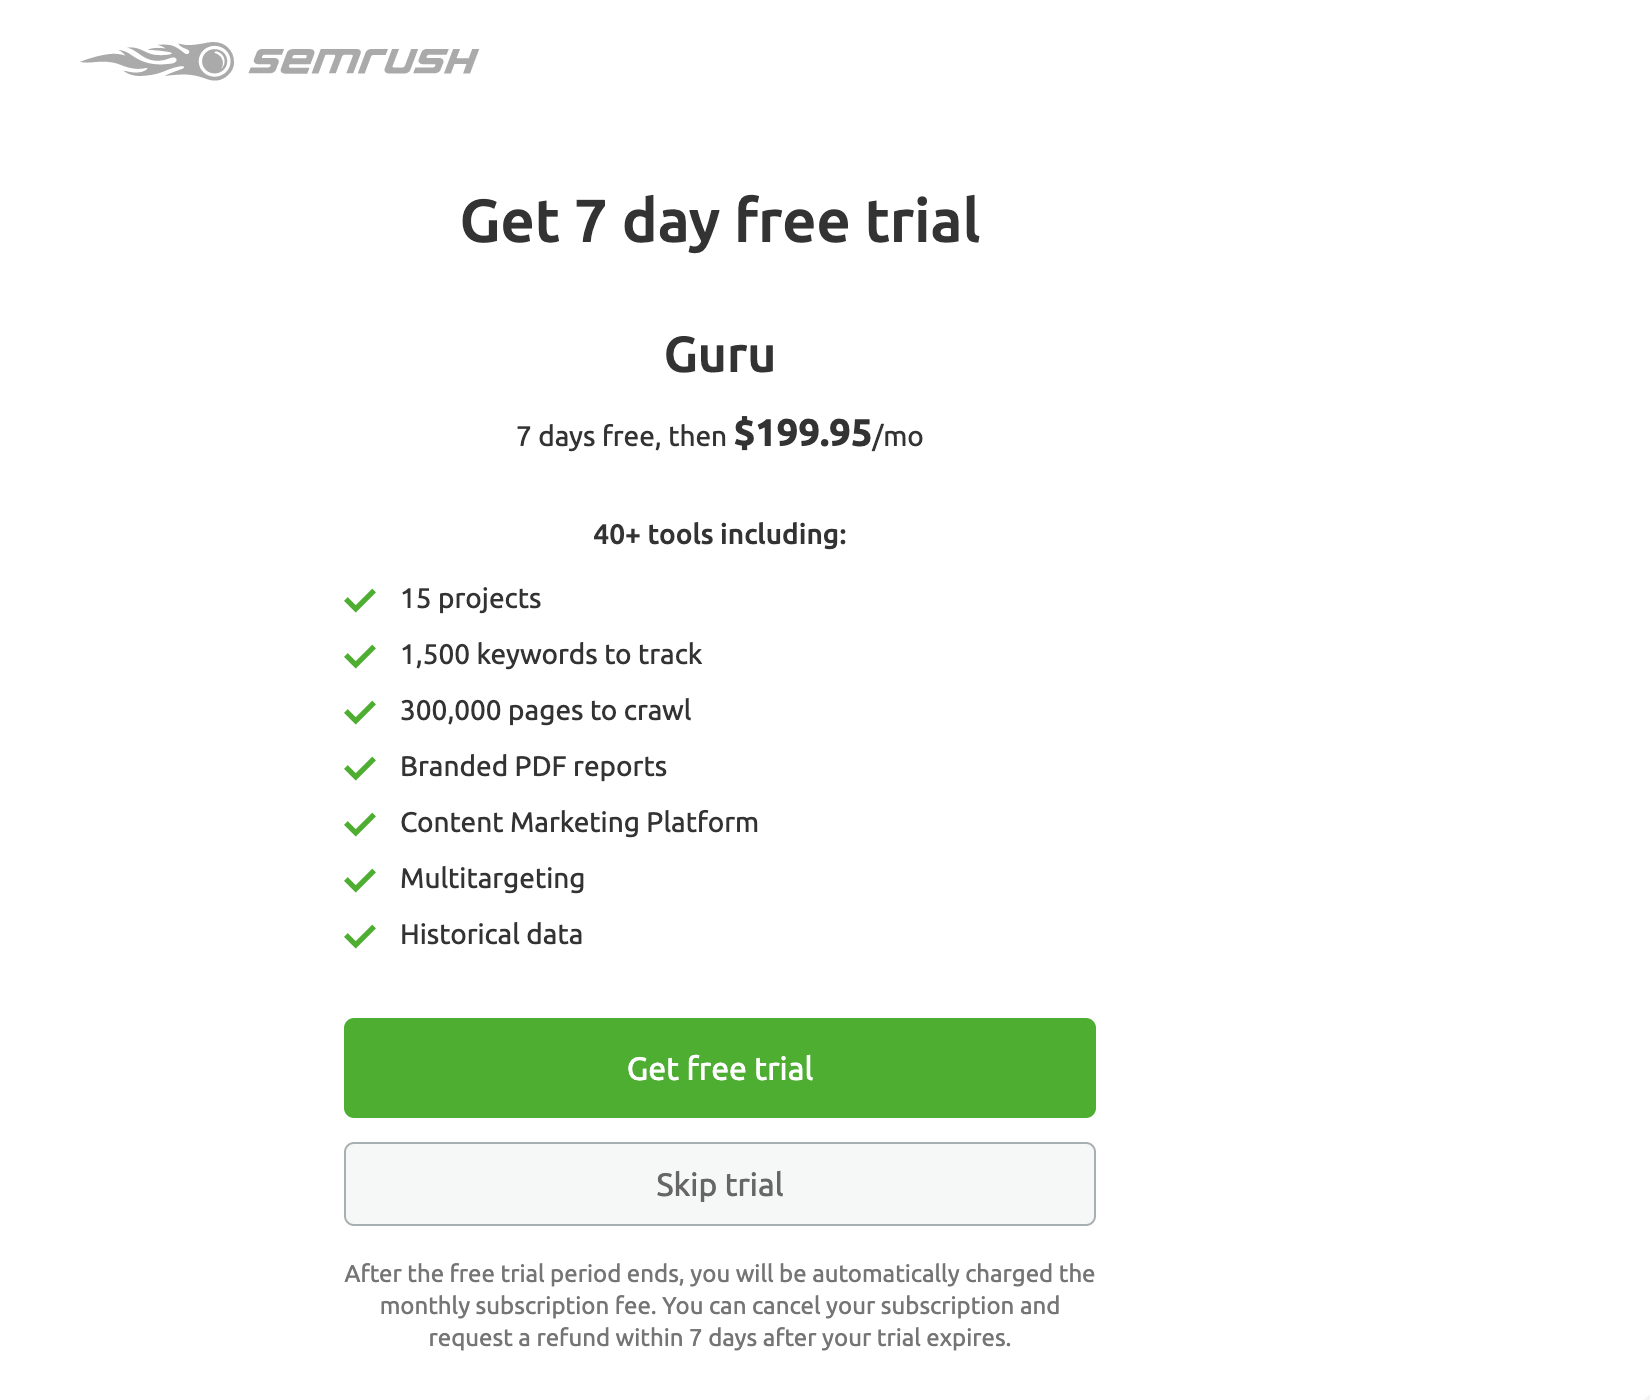 SEMrush Content Marketing Platform Get 7-Day Free Trial